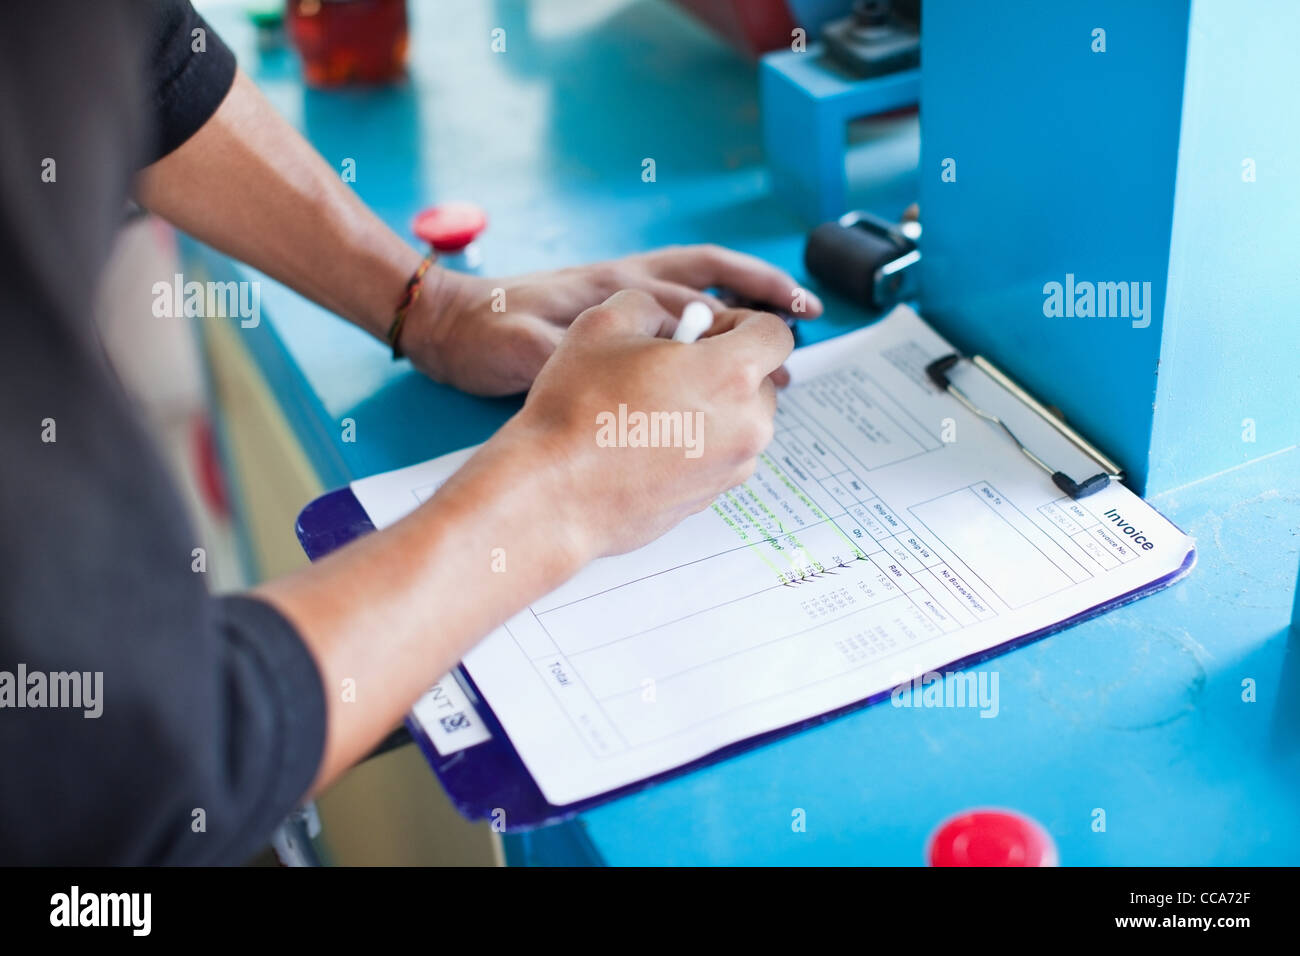 Man checking off items on an invoice - Stock Image